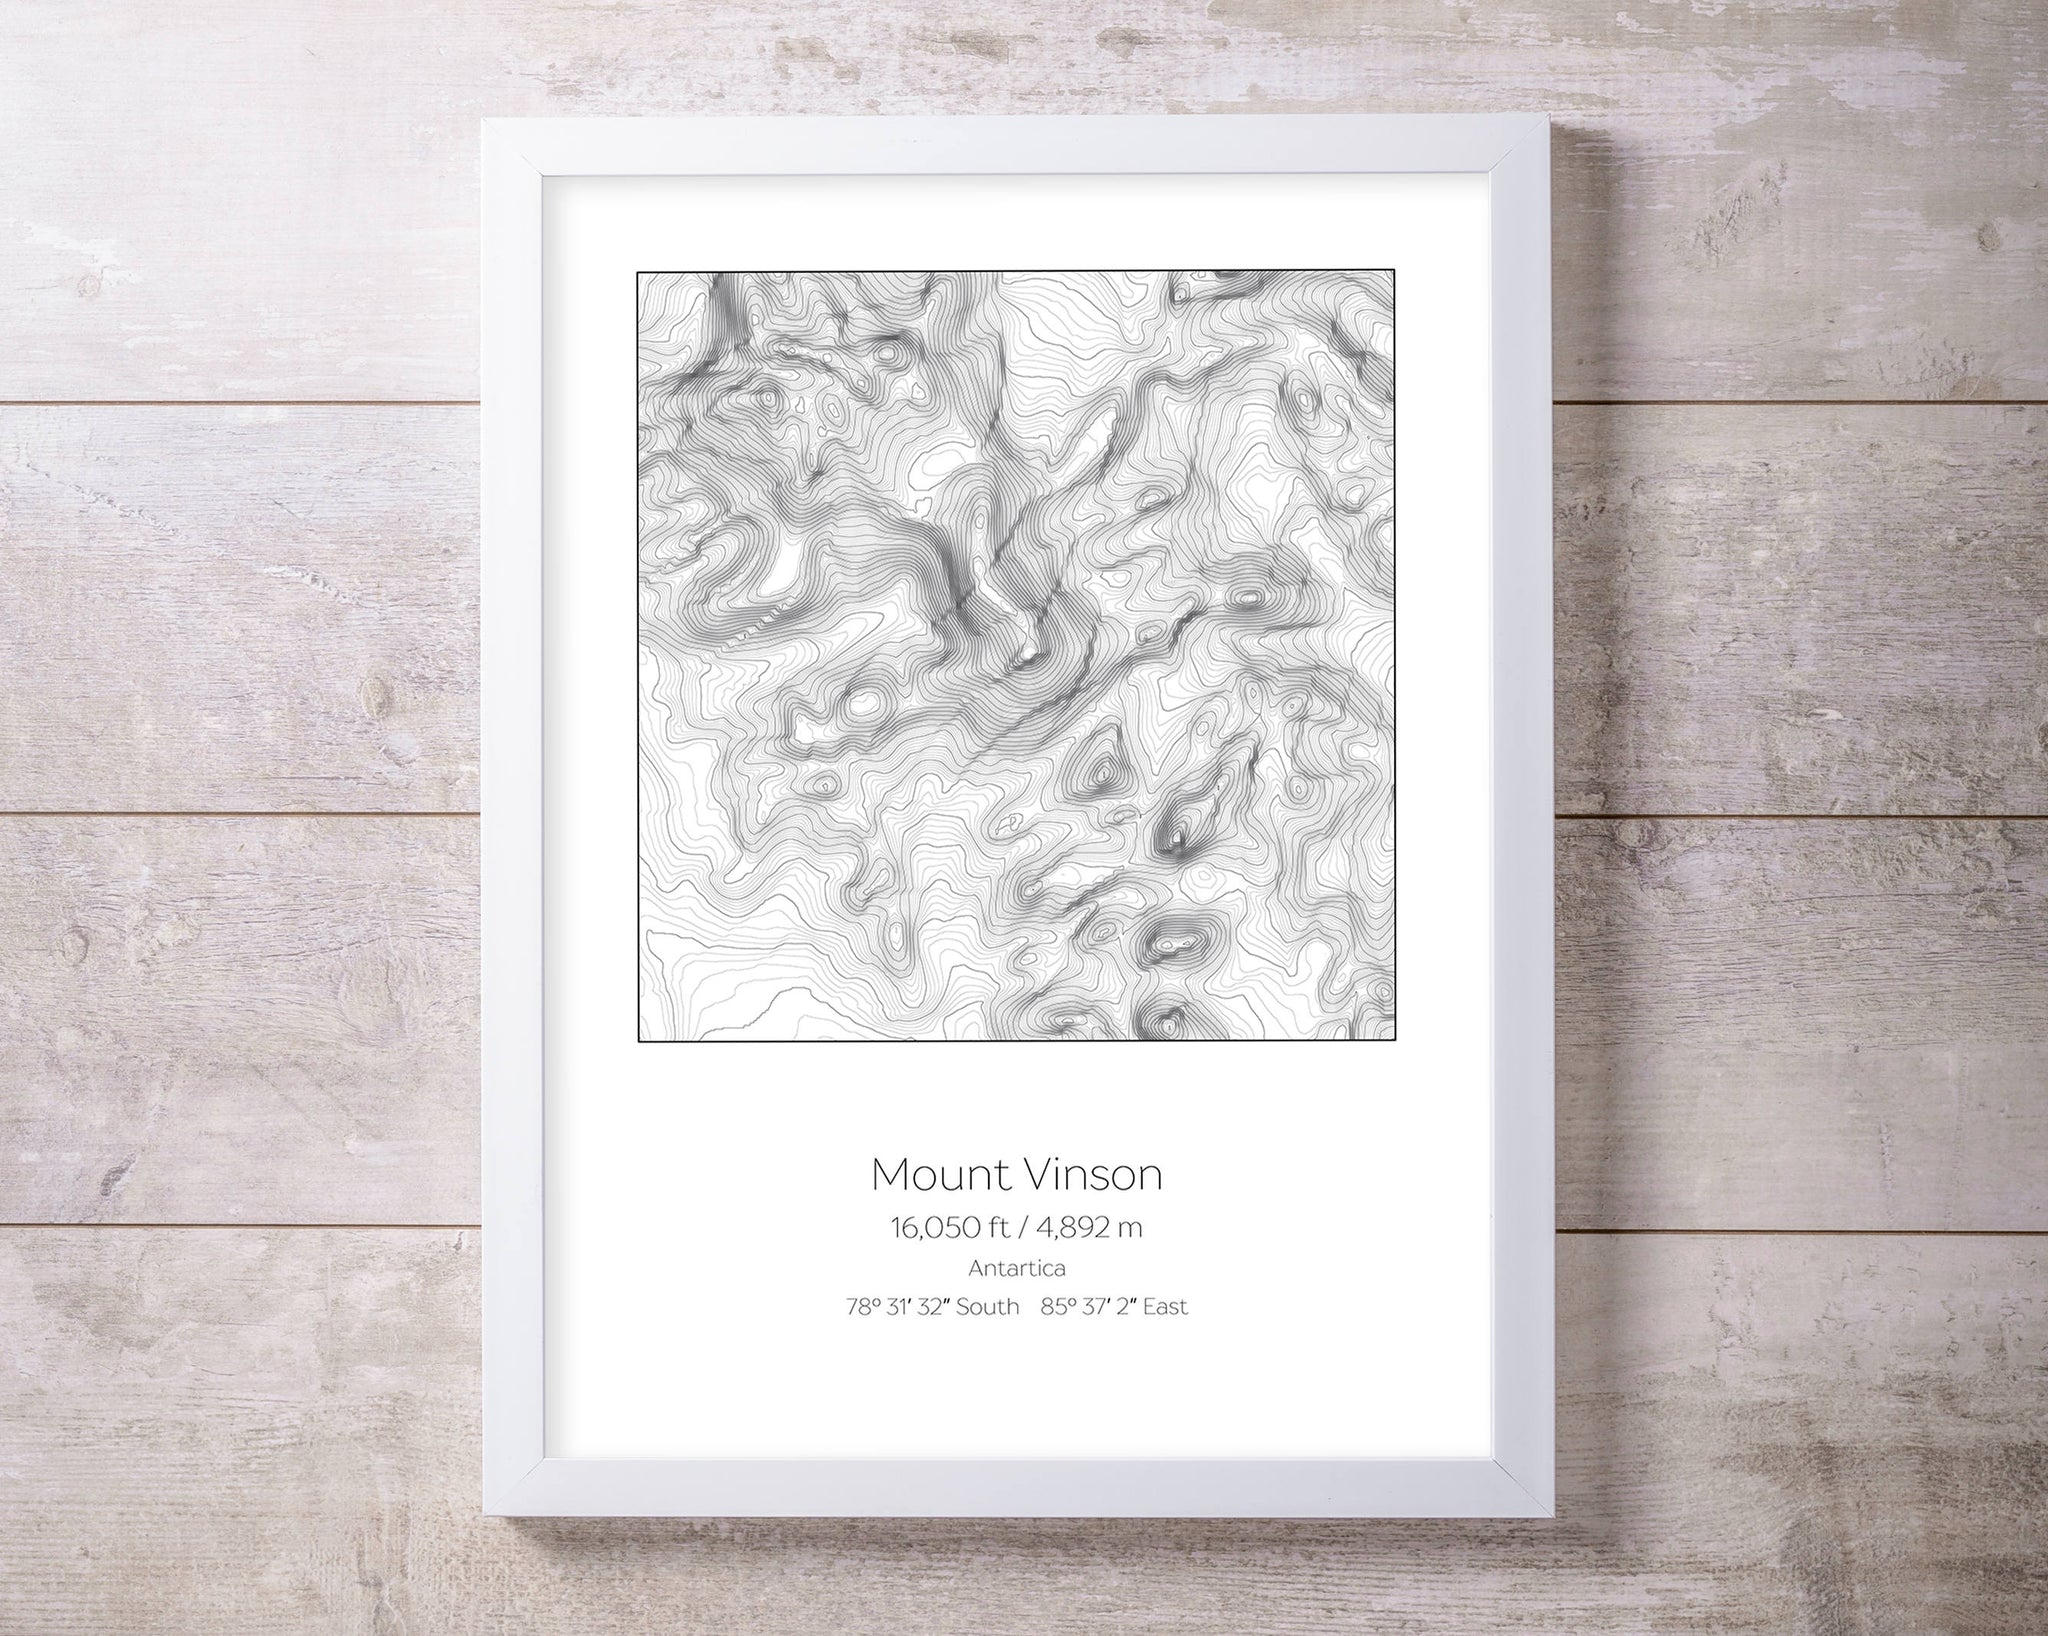 Mt Vinson, Antartica Topography Elevation Print Wall Art